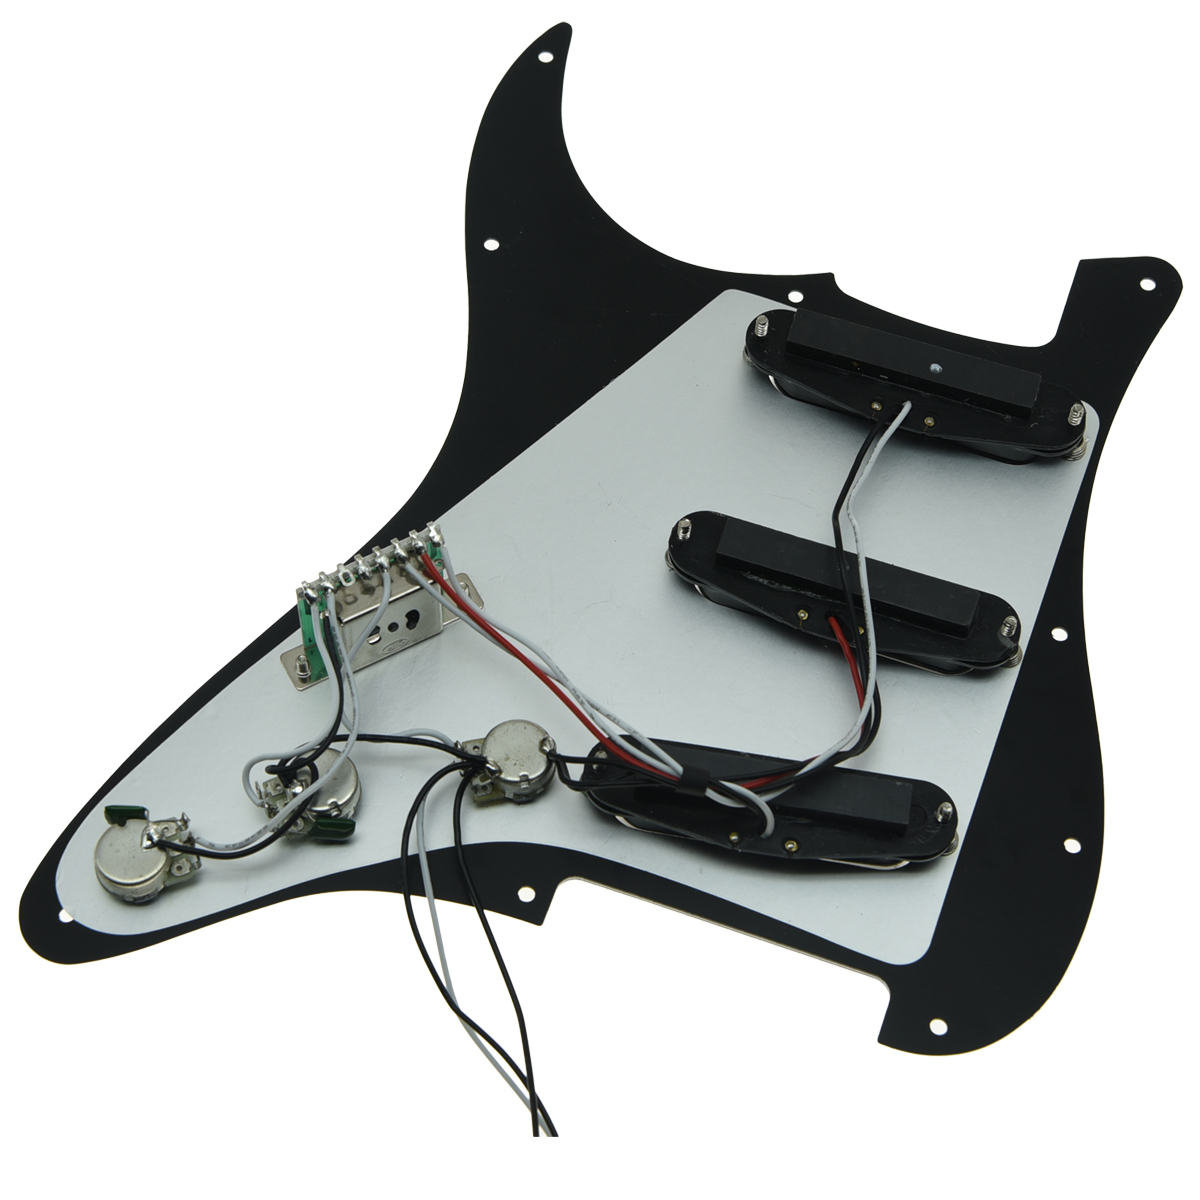 KAISH Various Loaded Strat SSS Pickguard Prewired ST Strat Pickguard with Pickups Fits for Fender in Guitar Parts Accessories from Sports Entertainment